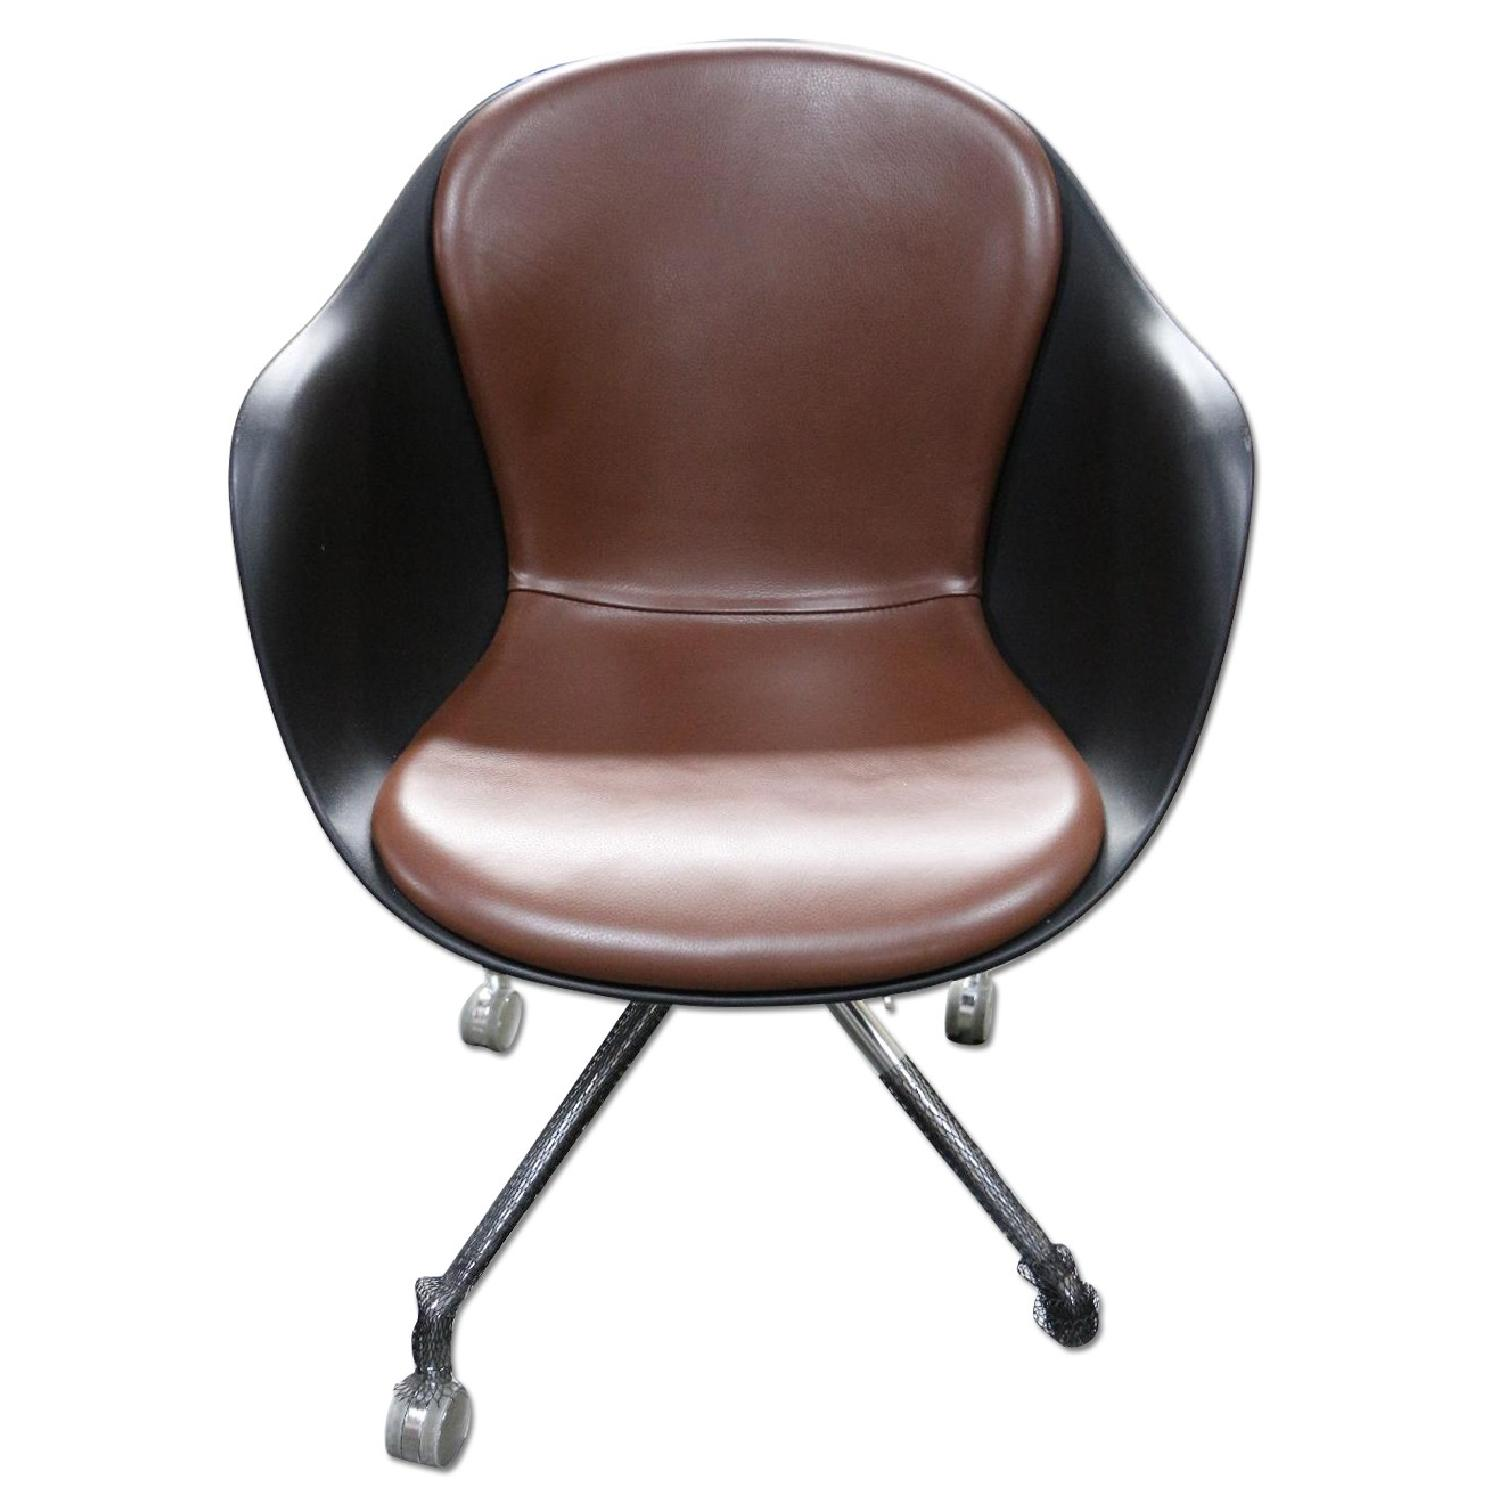 BoConcept Adelaide Chair w/ Swivel Function - image-0